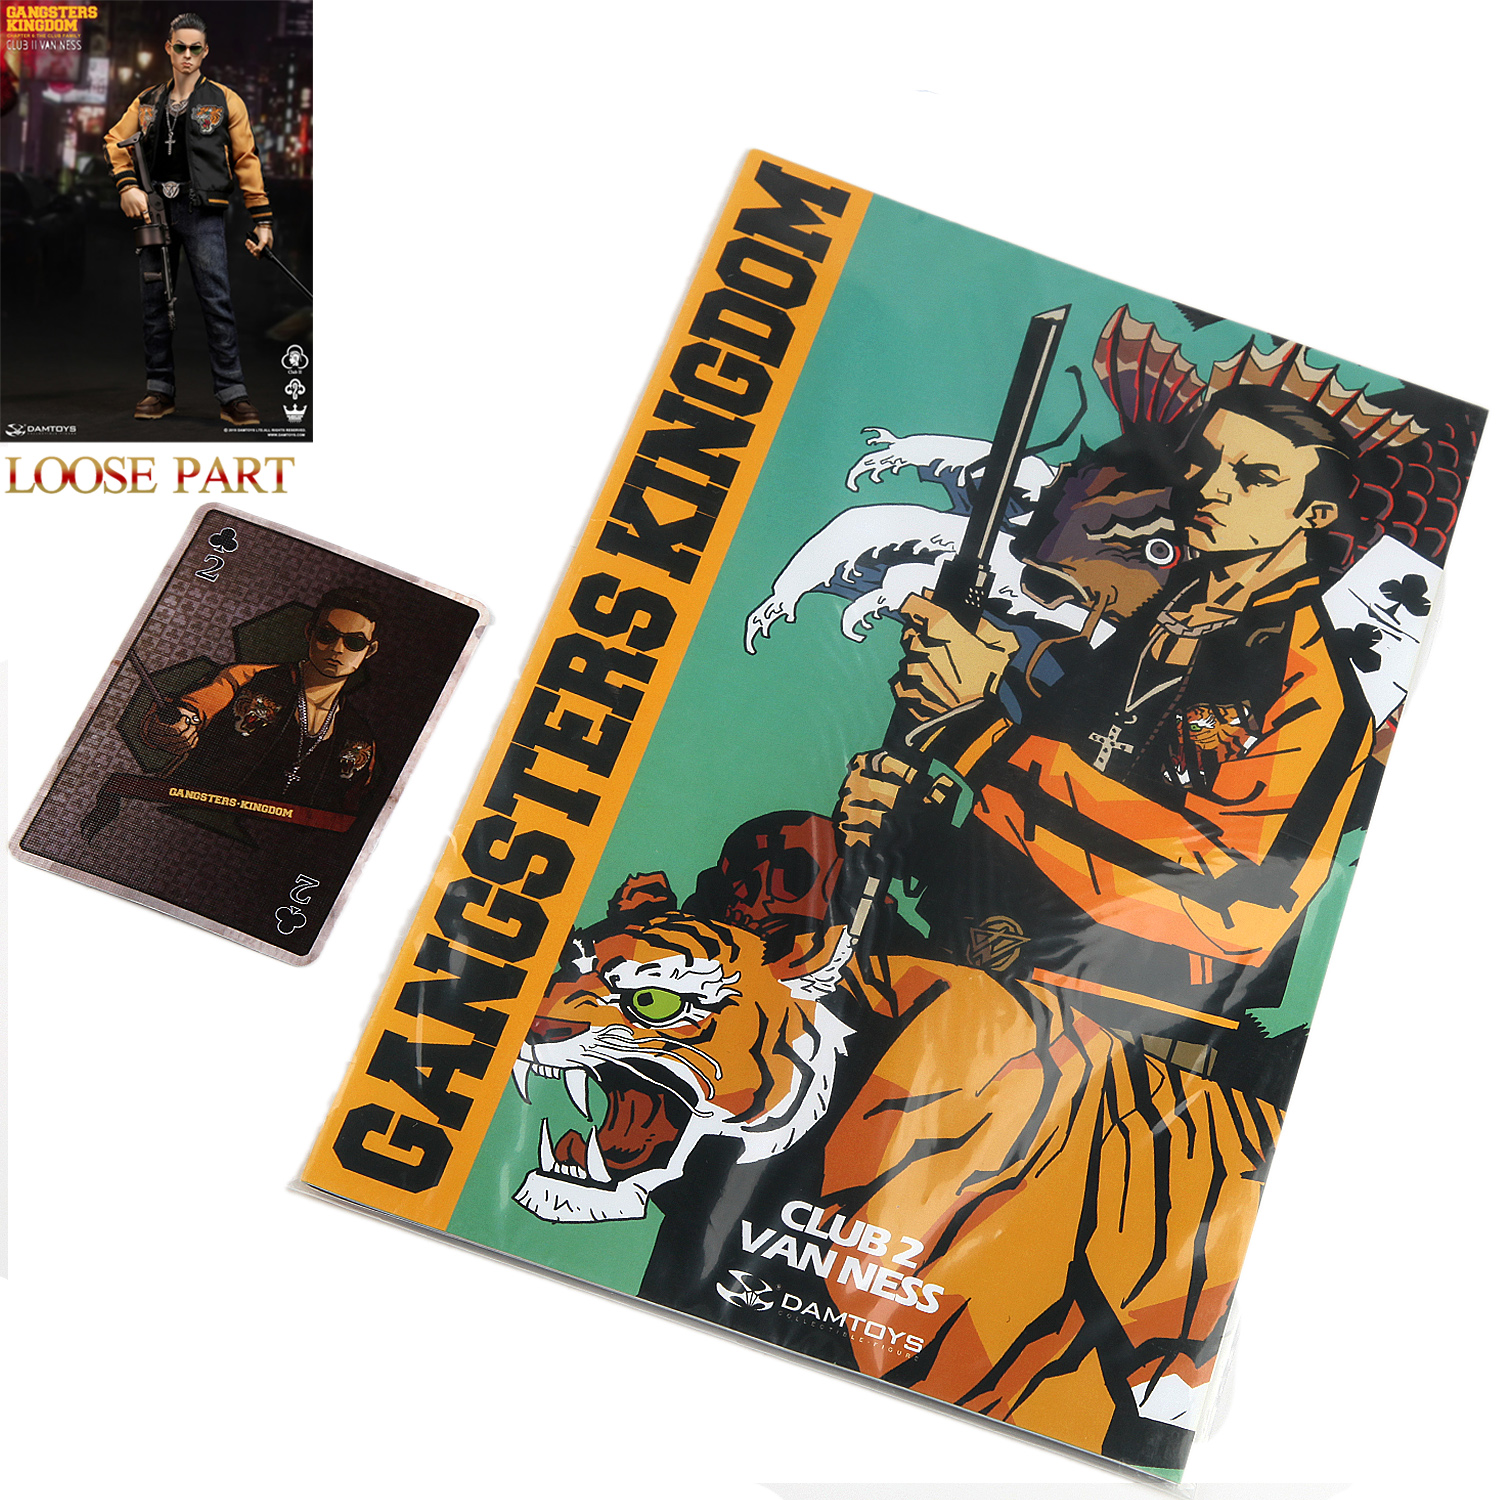 In Stock DAMTOYS 1//6 Gangsters Kingdom Club 2 Van Ness Action Figure New